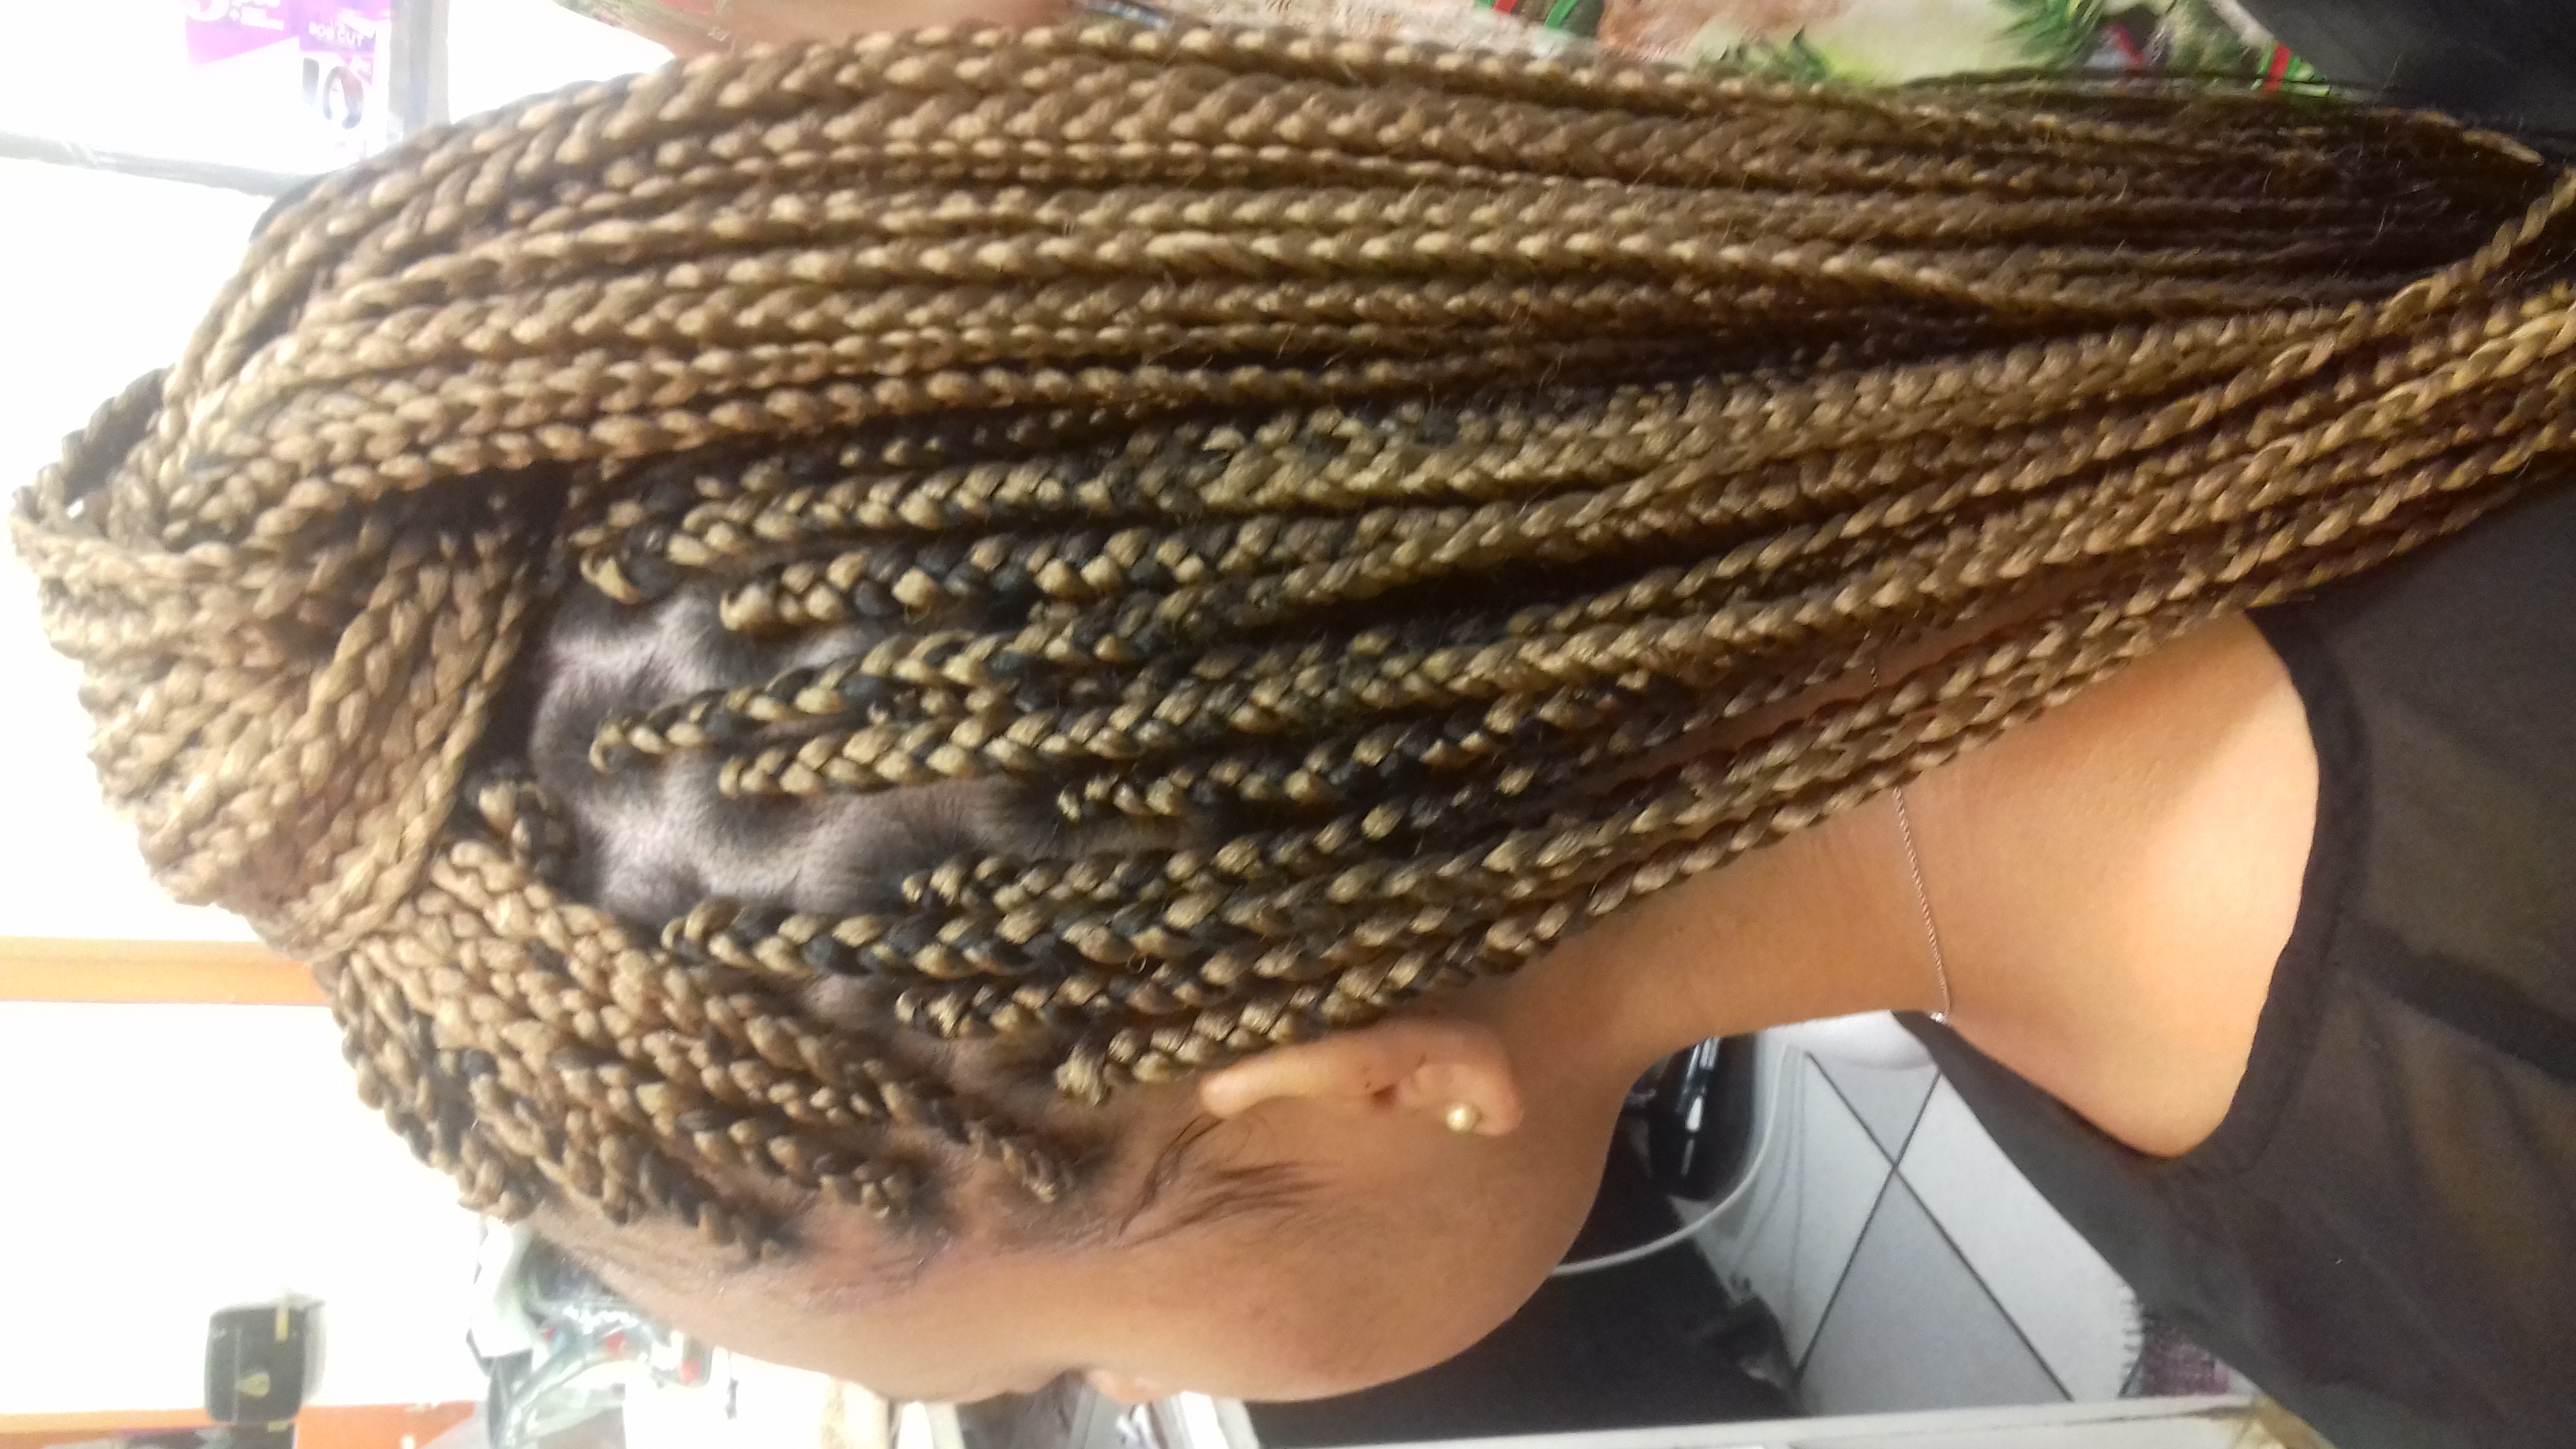 salon de coiffure afro tresse tresses box braids crochet braids vanilles tissages paris 75 77 78 91 92 93 94 95 DDLWFYTC